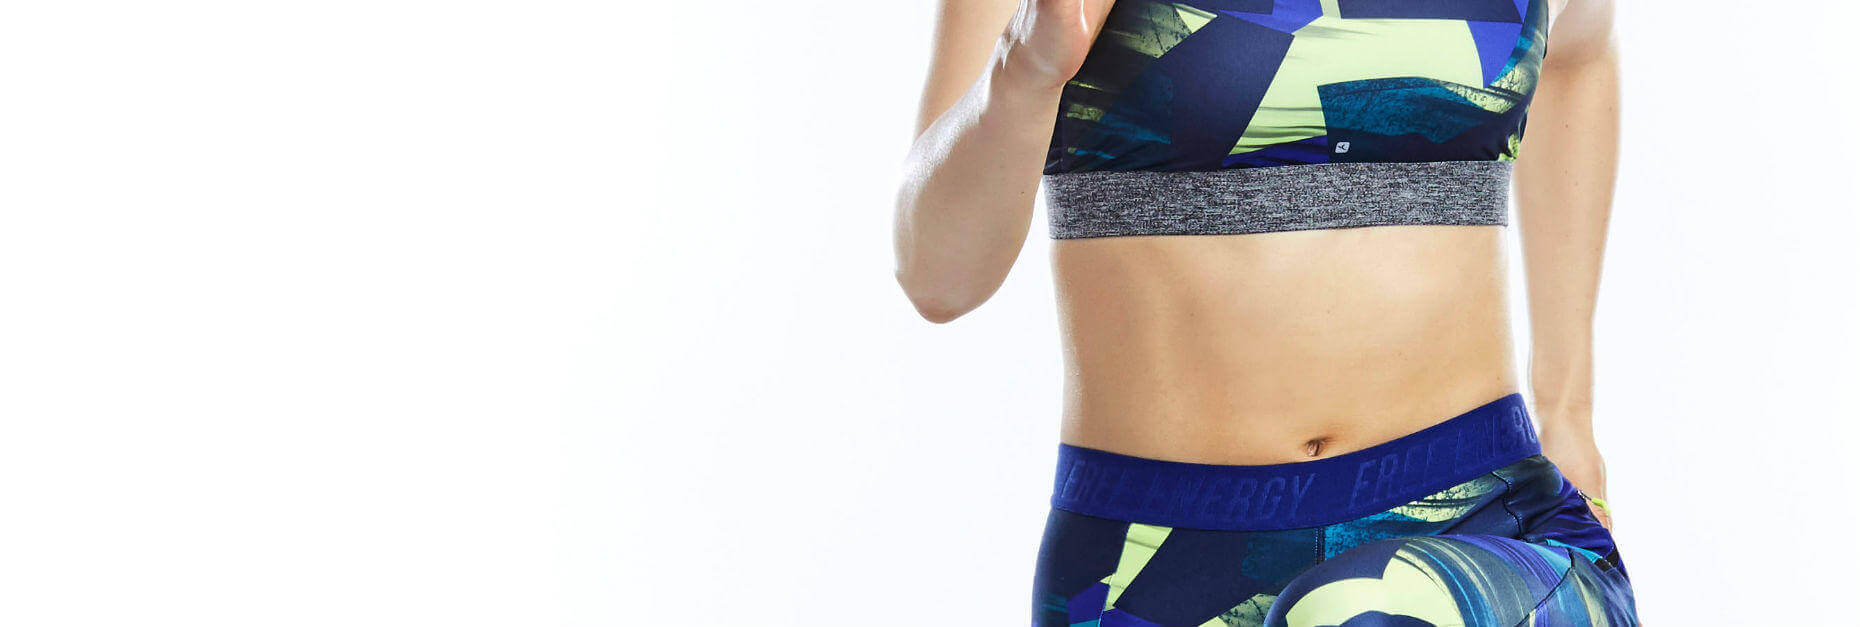 7 Brilliant Tips to Get a Flat Tummy